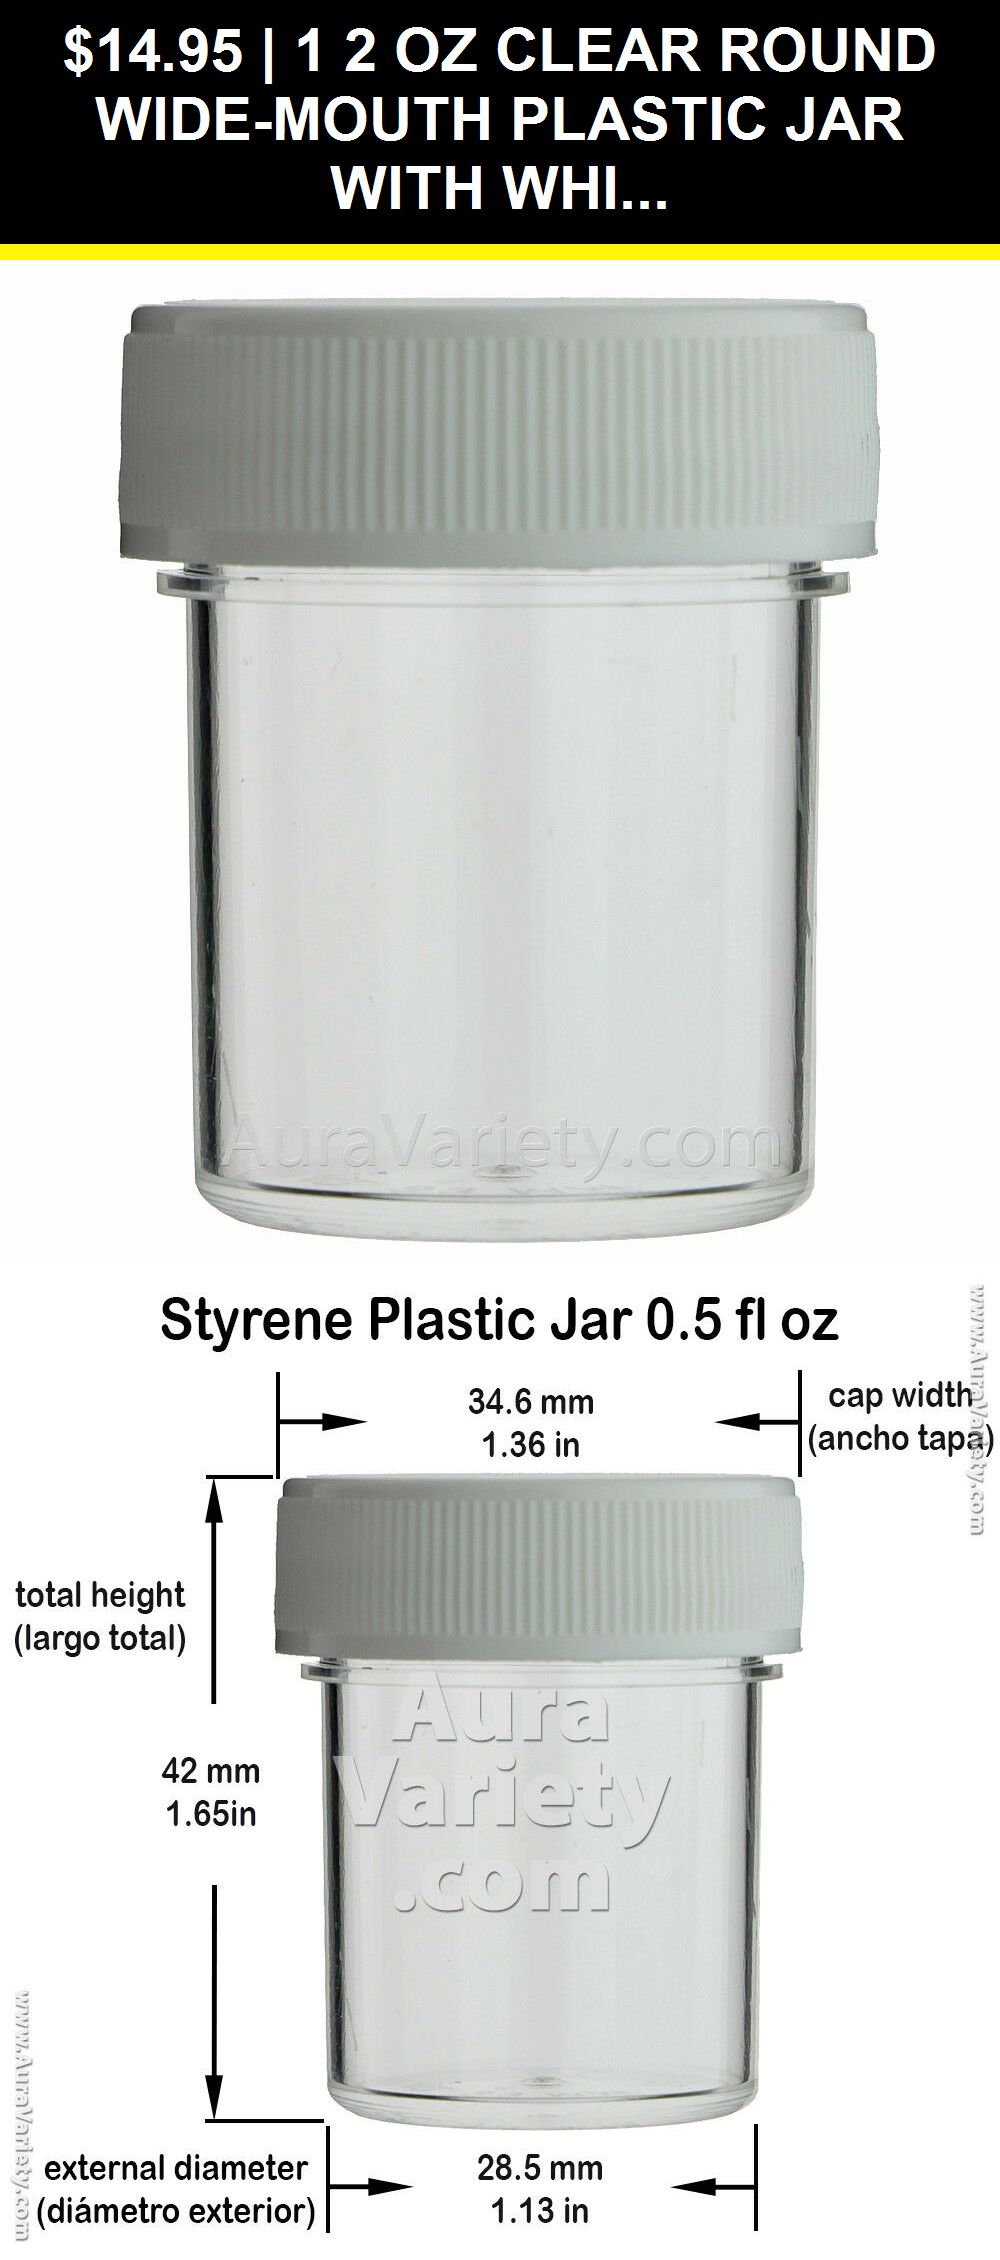 1 2 Oz Clear Round Wide Mouth Plastic Jar With White Screw Cap 12 24 72 144 288 Ebay Plastic Jars Jar Mini Bottles